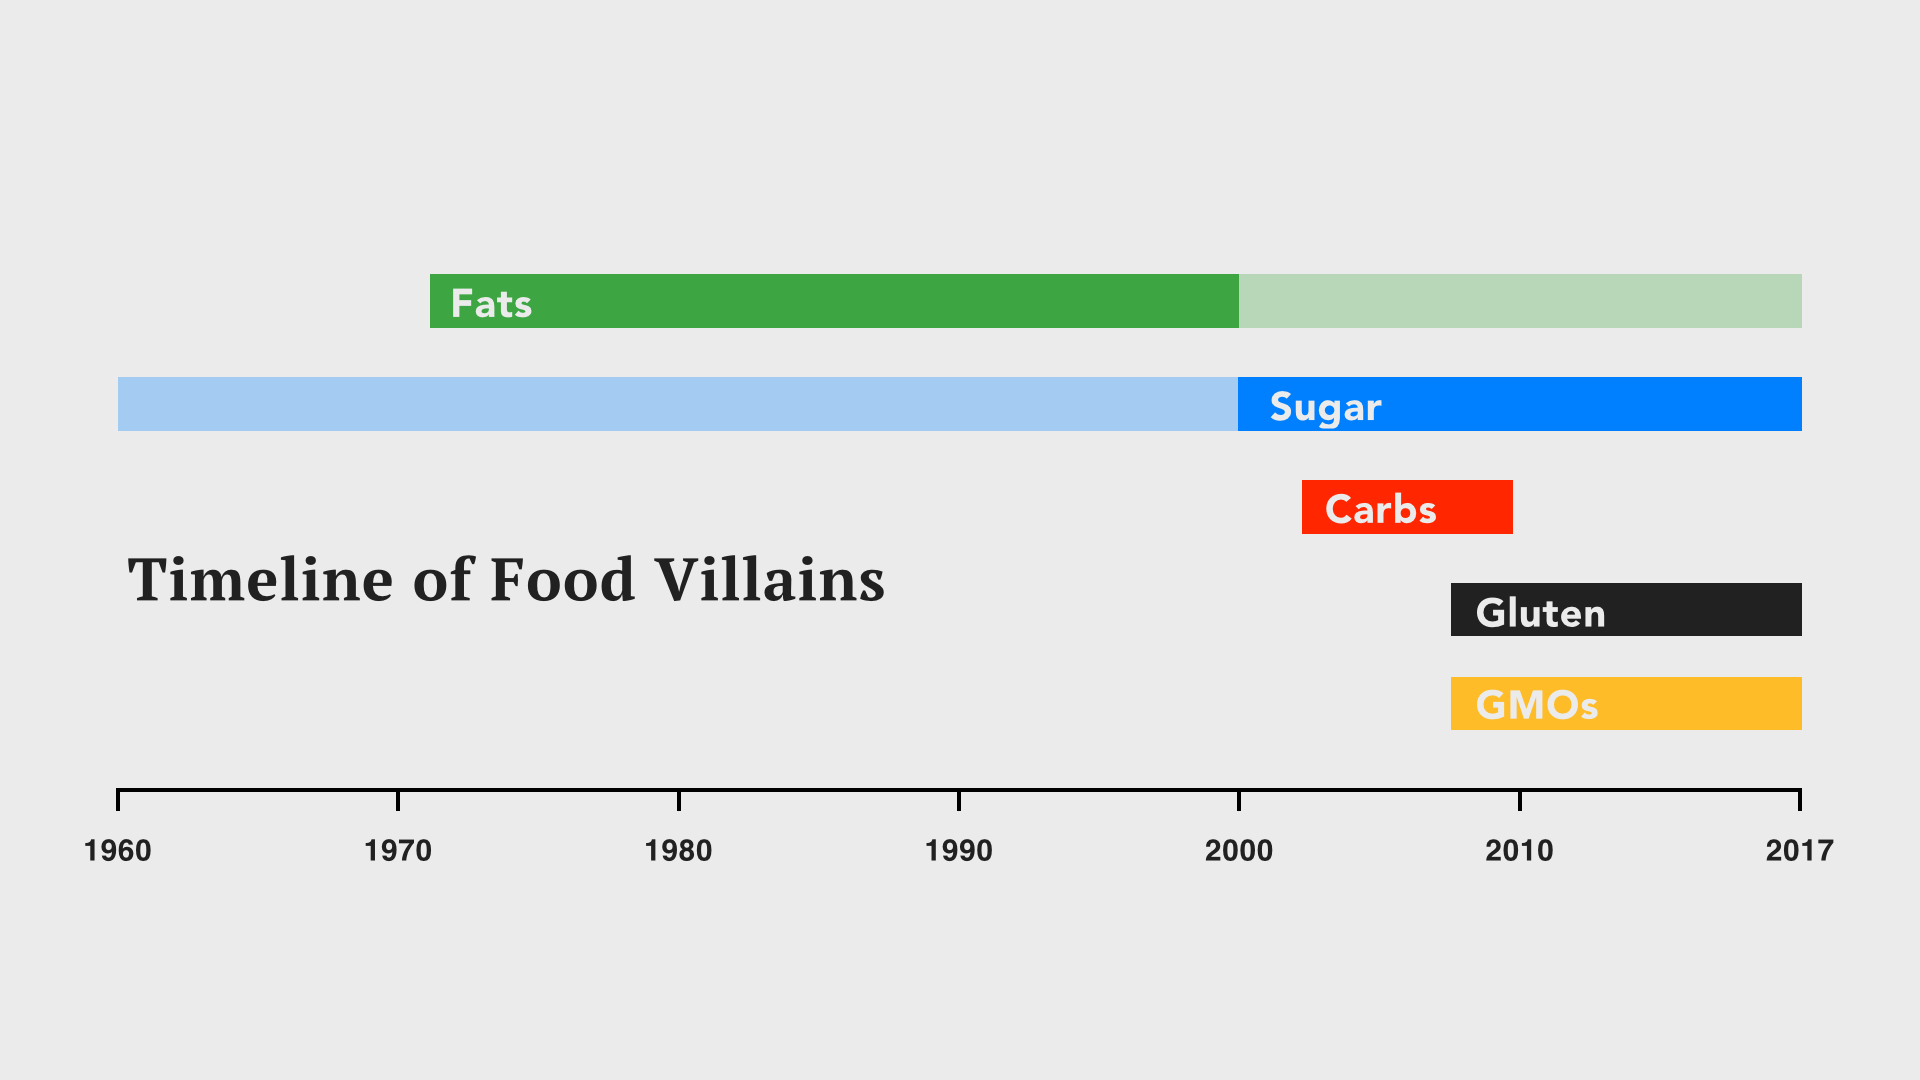 As with Sugar every year there's a new villain. The ingredients that continue to scare us most are those we have little understanding of. In 2010, it was gluten, and alongside gluten, GMOs are the current villain